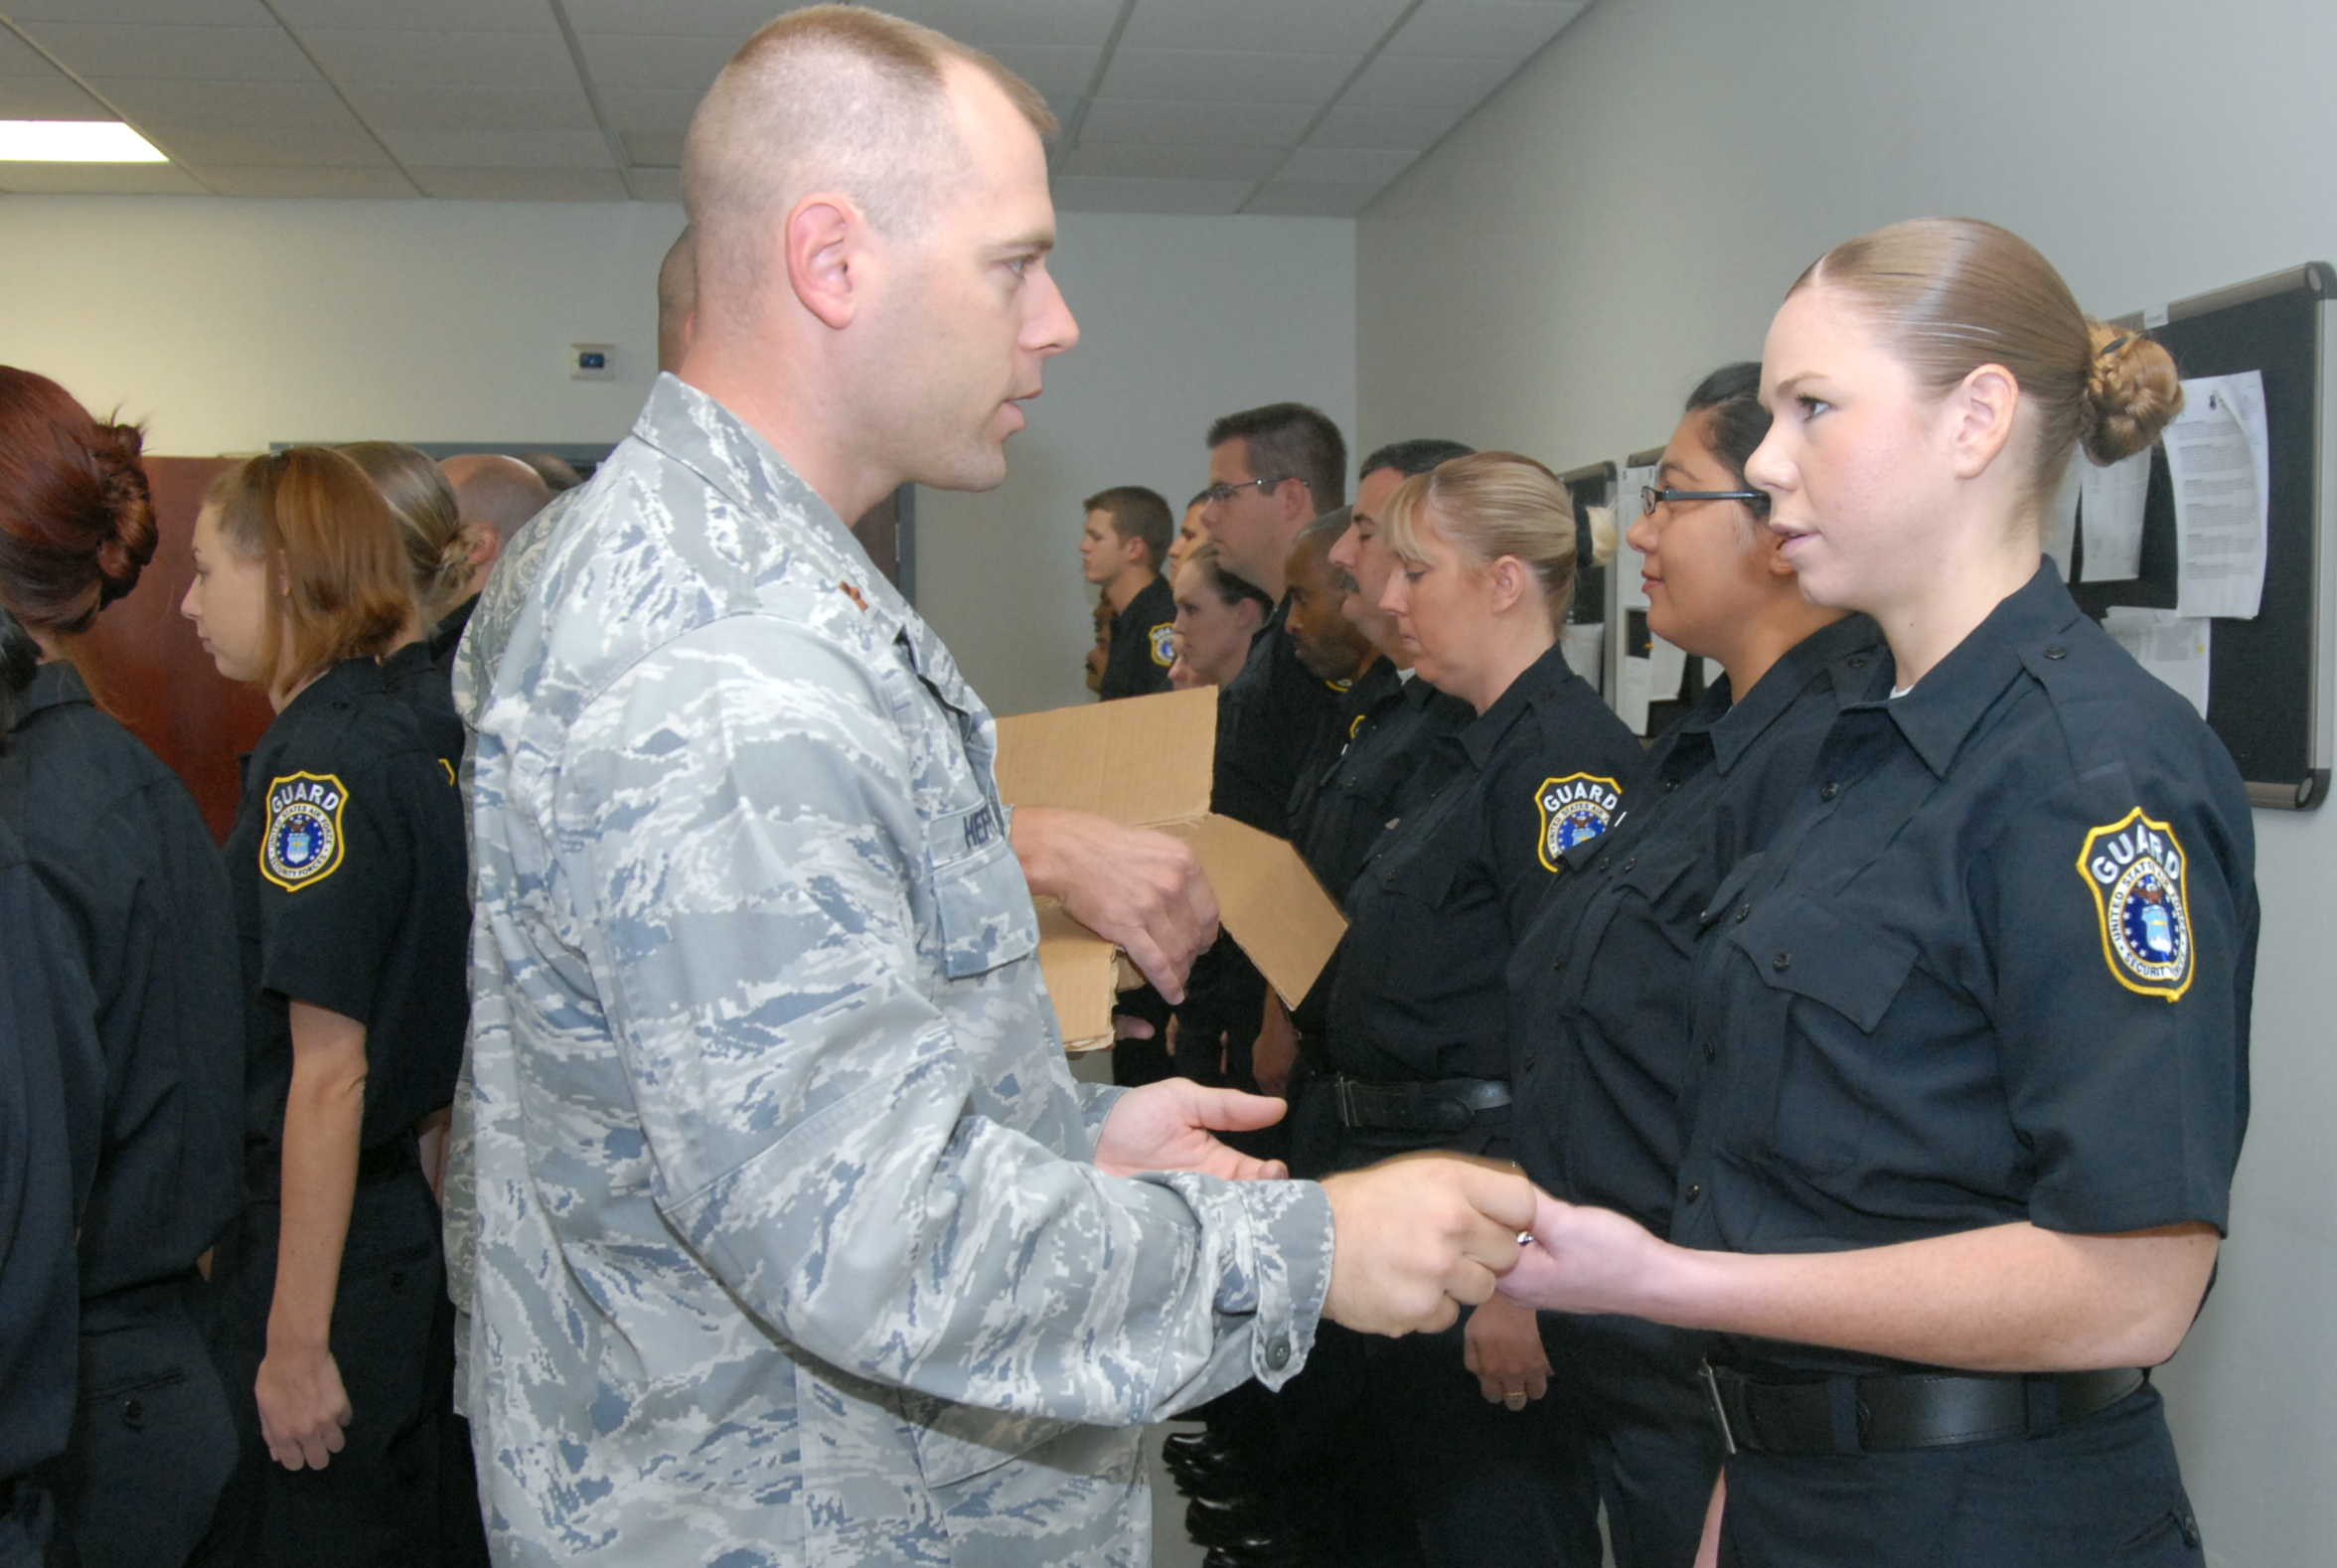 95th Sfs Welcomes First Batch Of New Civilian Police Force